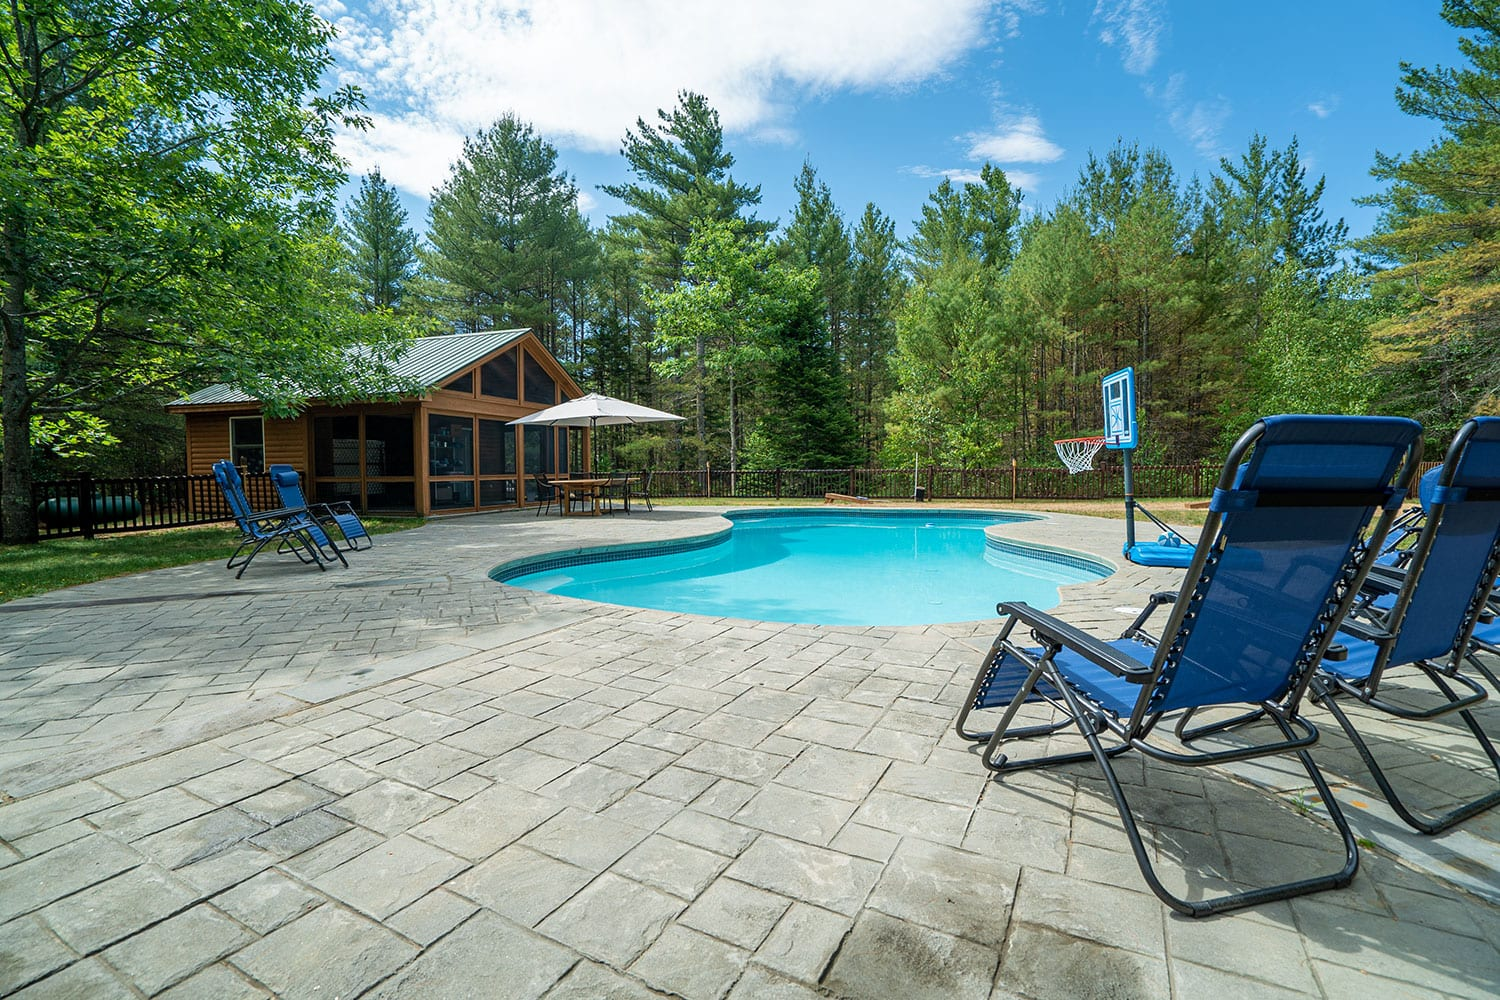 A photo of the pool at Foundation House's FoxHole Ranch.